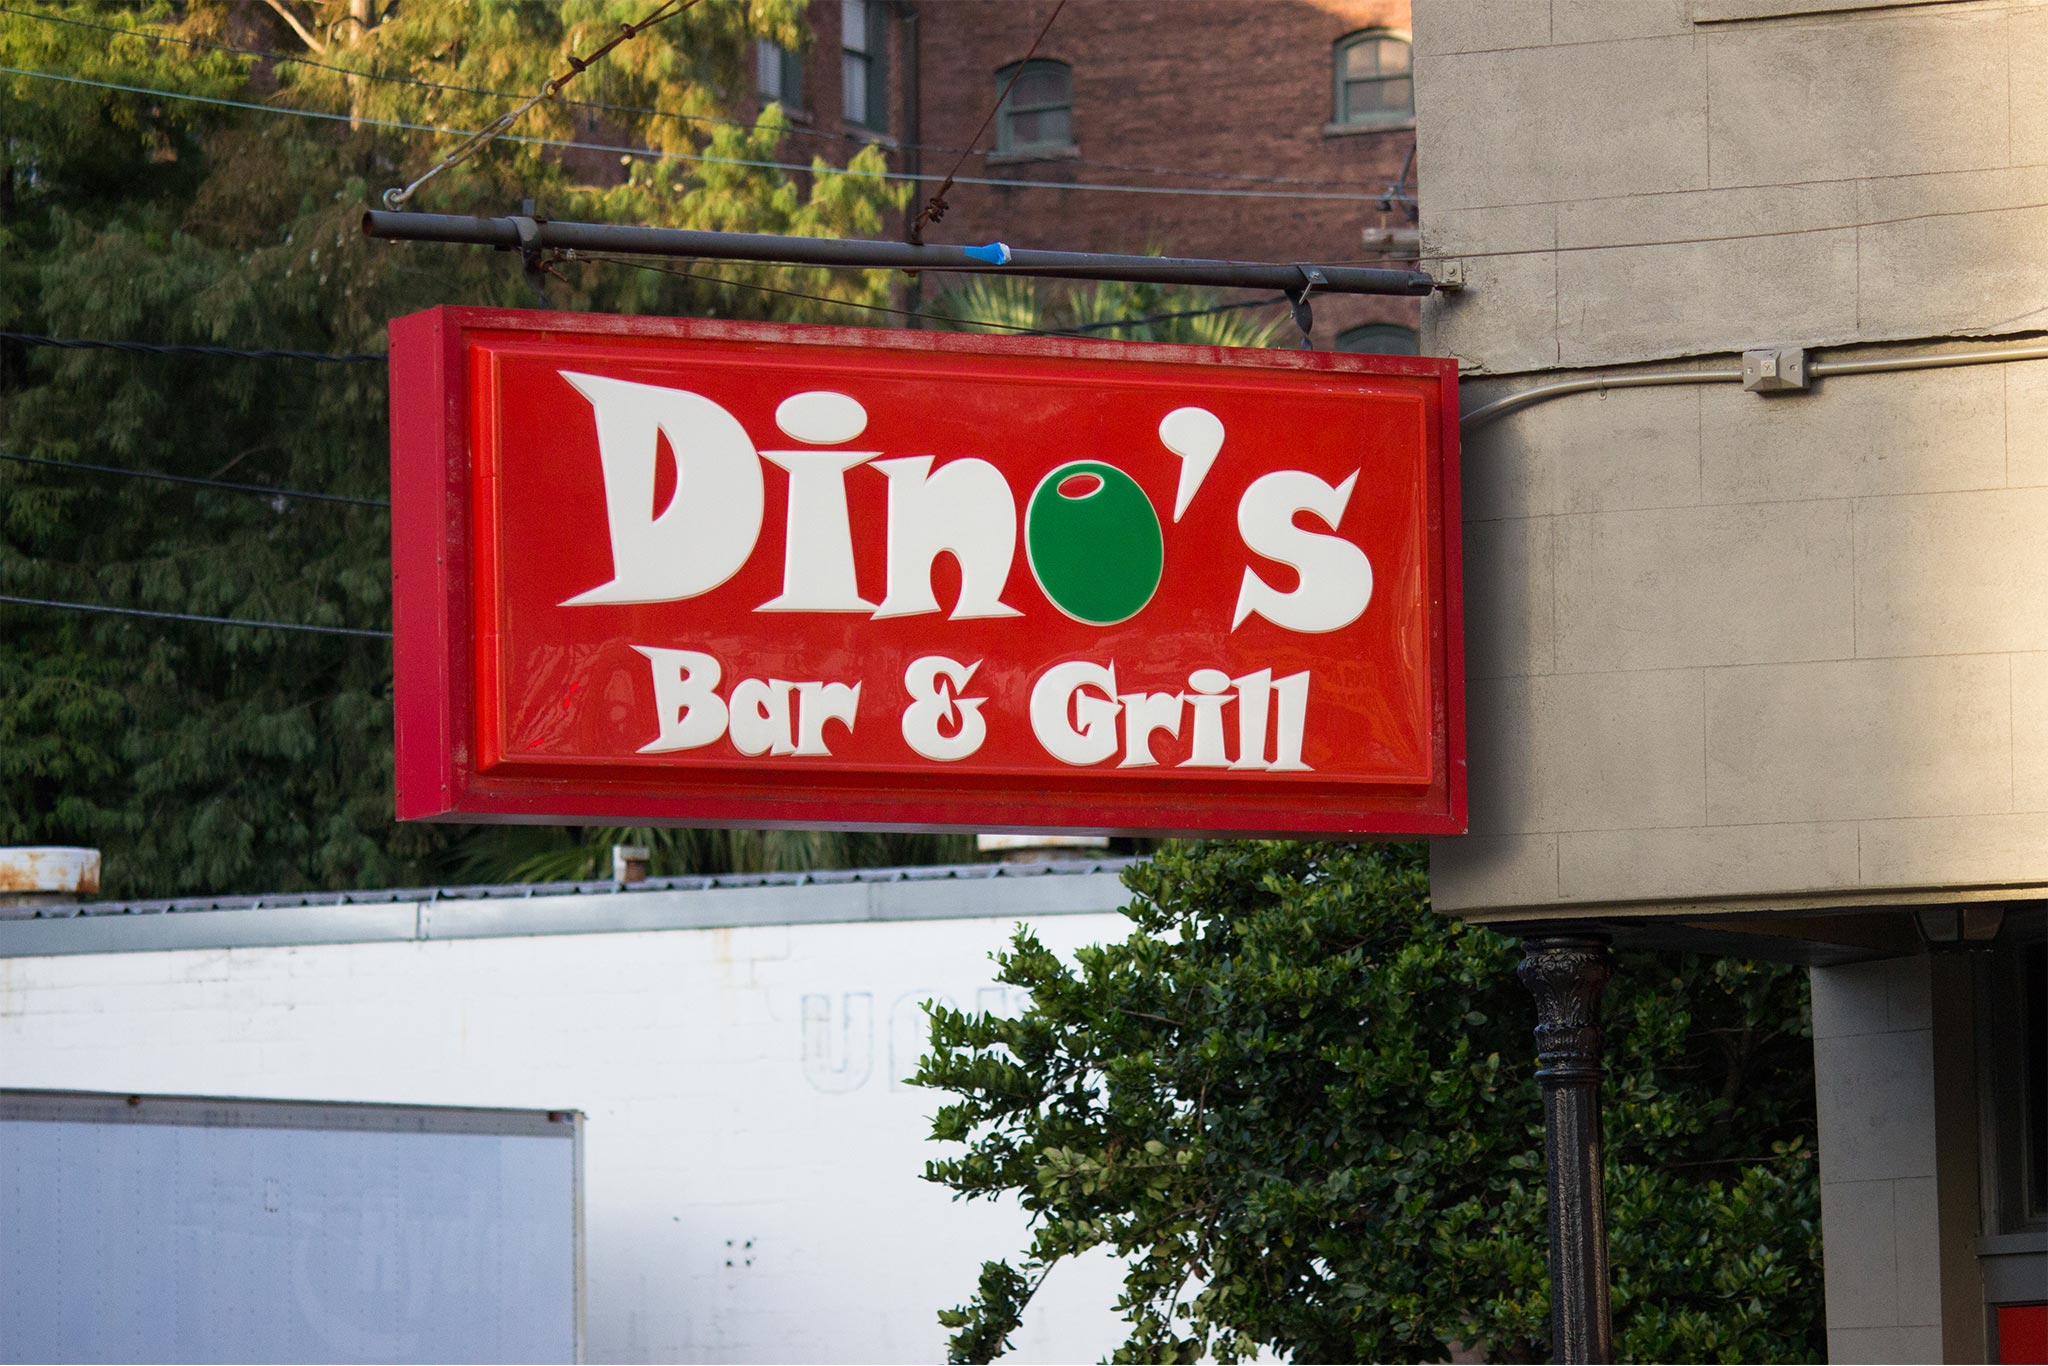 Dinos Bar and Grill Exterior